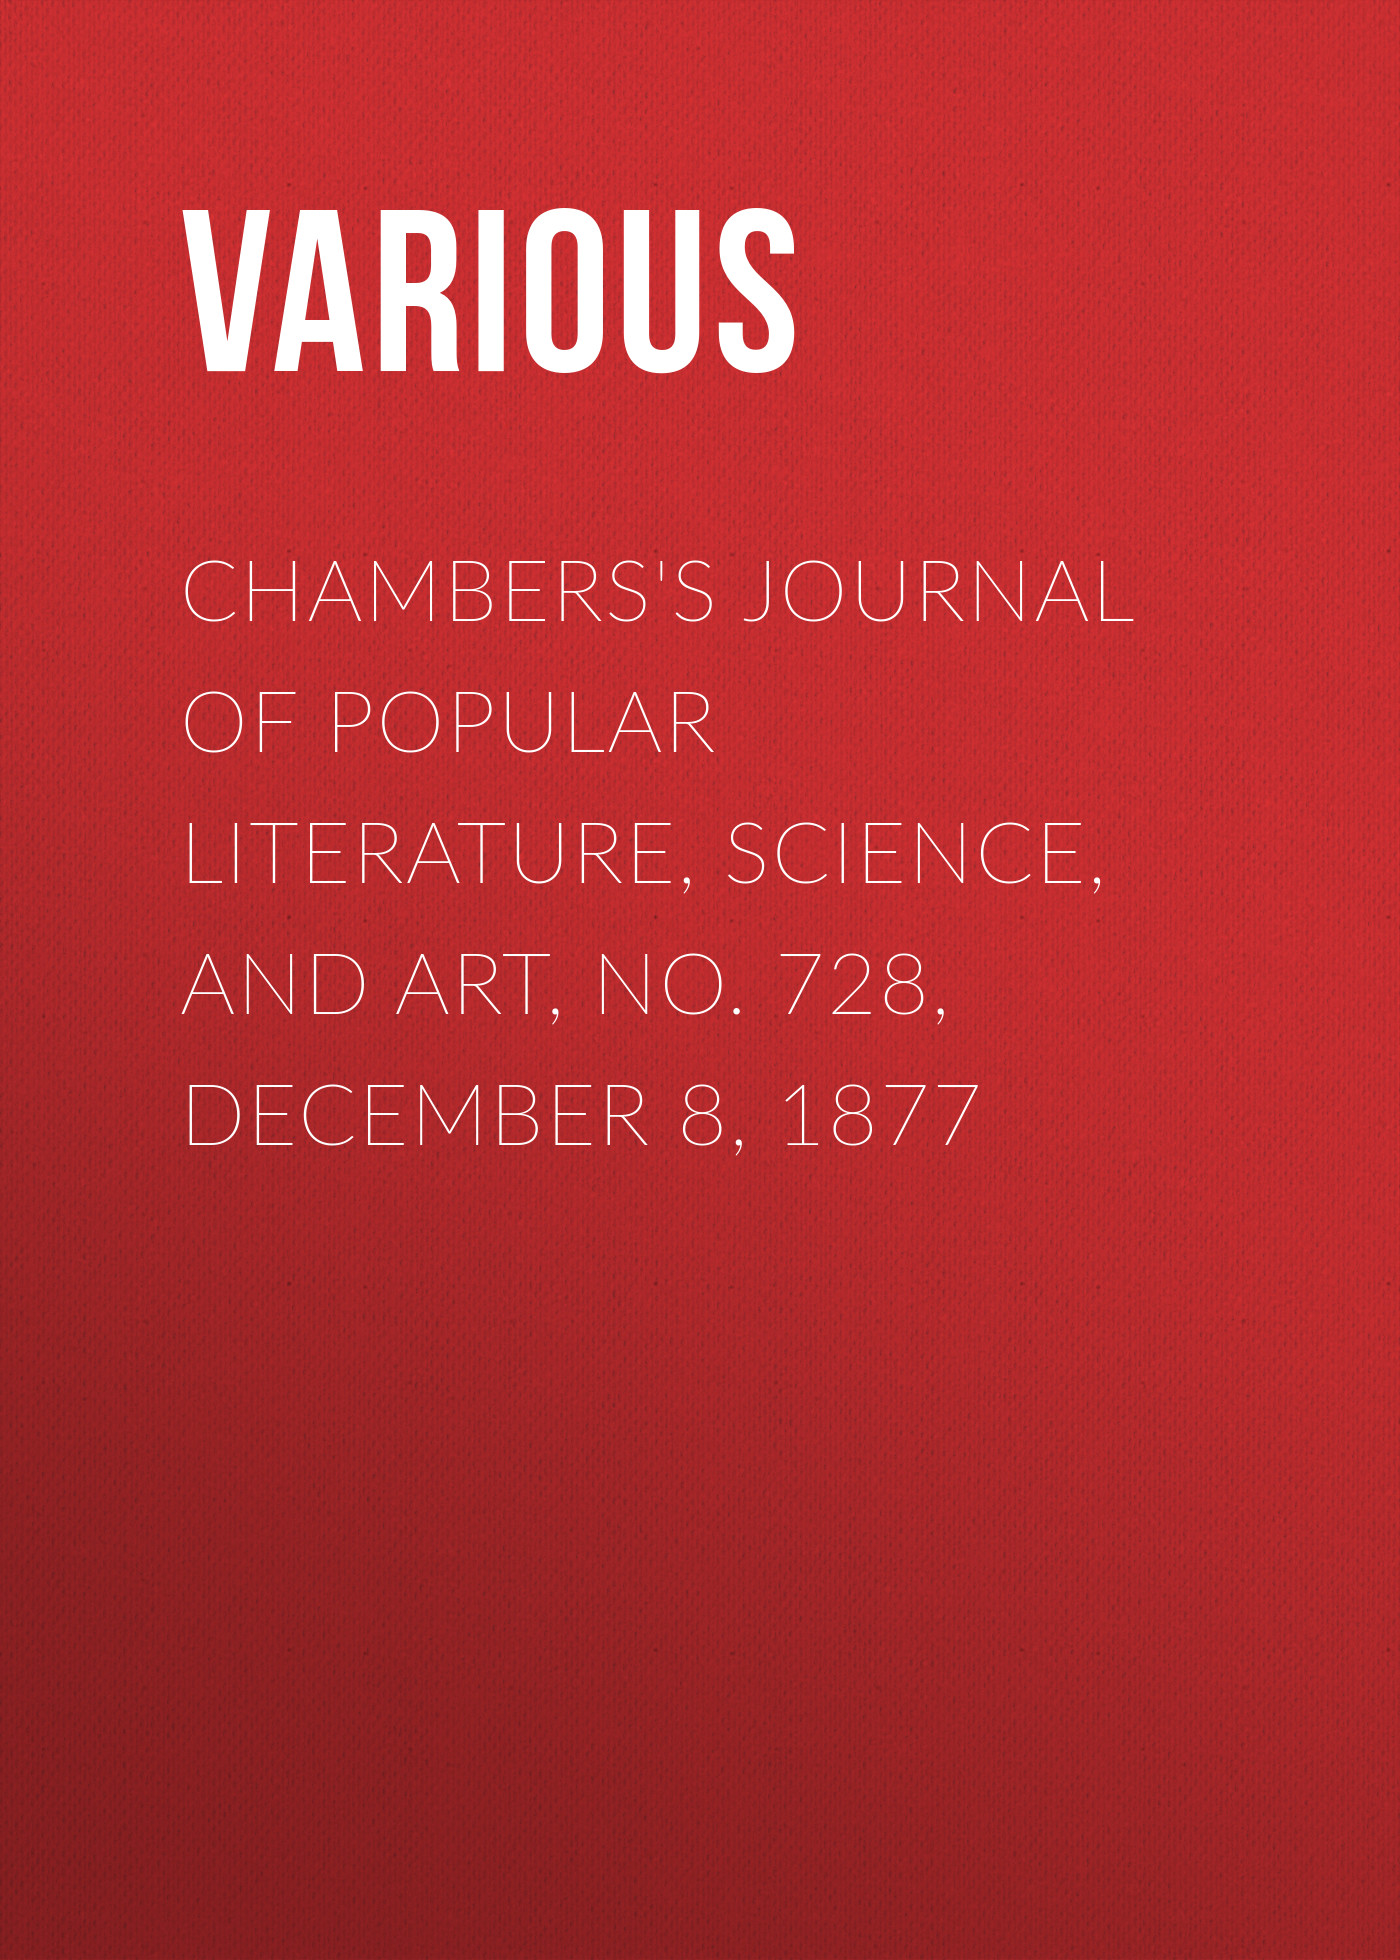 Various Chambers's Journal of Popular Literature, Science, and Art, No. 728, December 8, 1877 various chambers s journal of popular literature science and art no 699